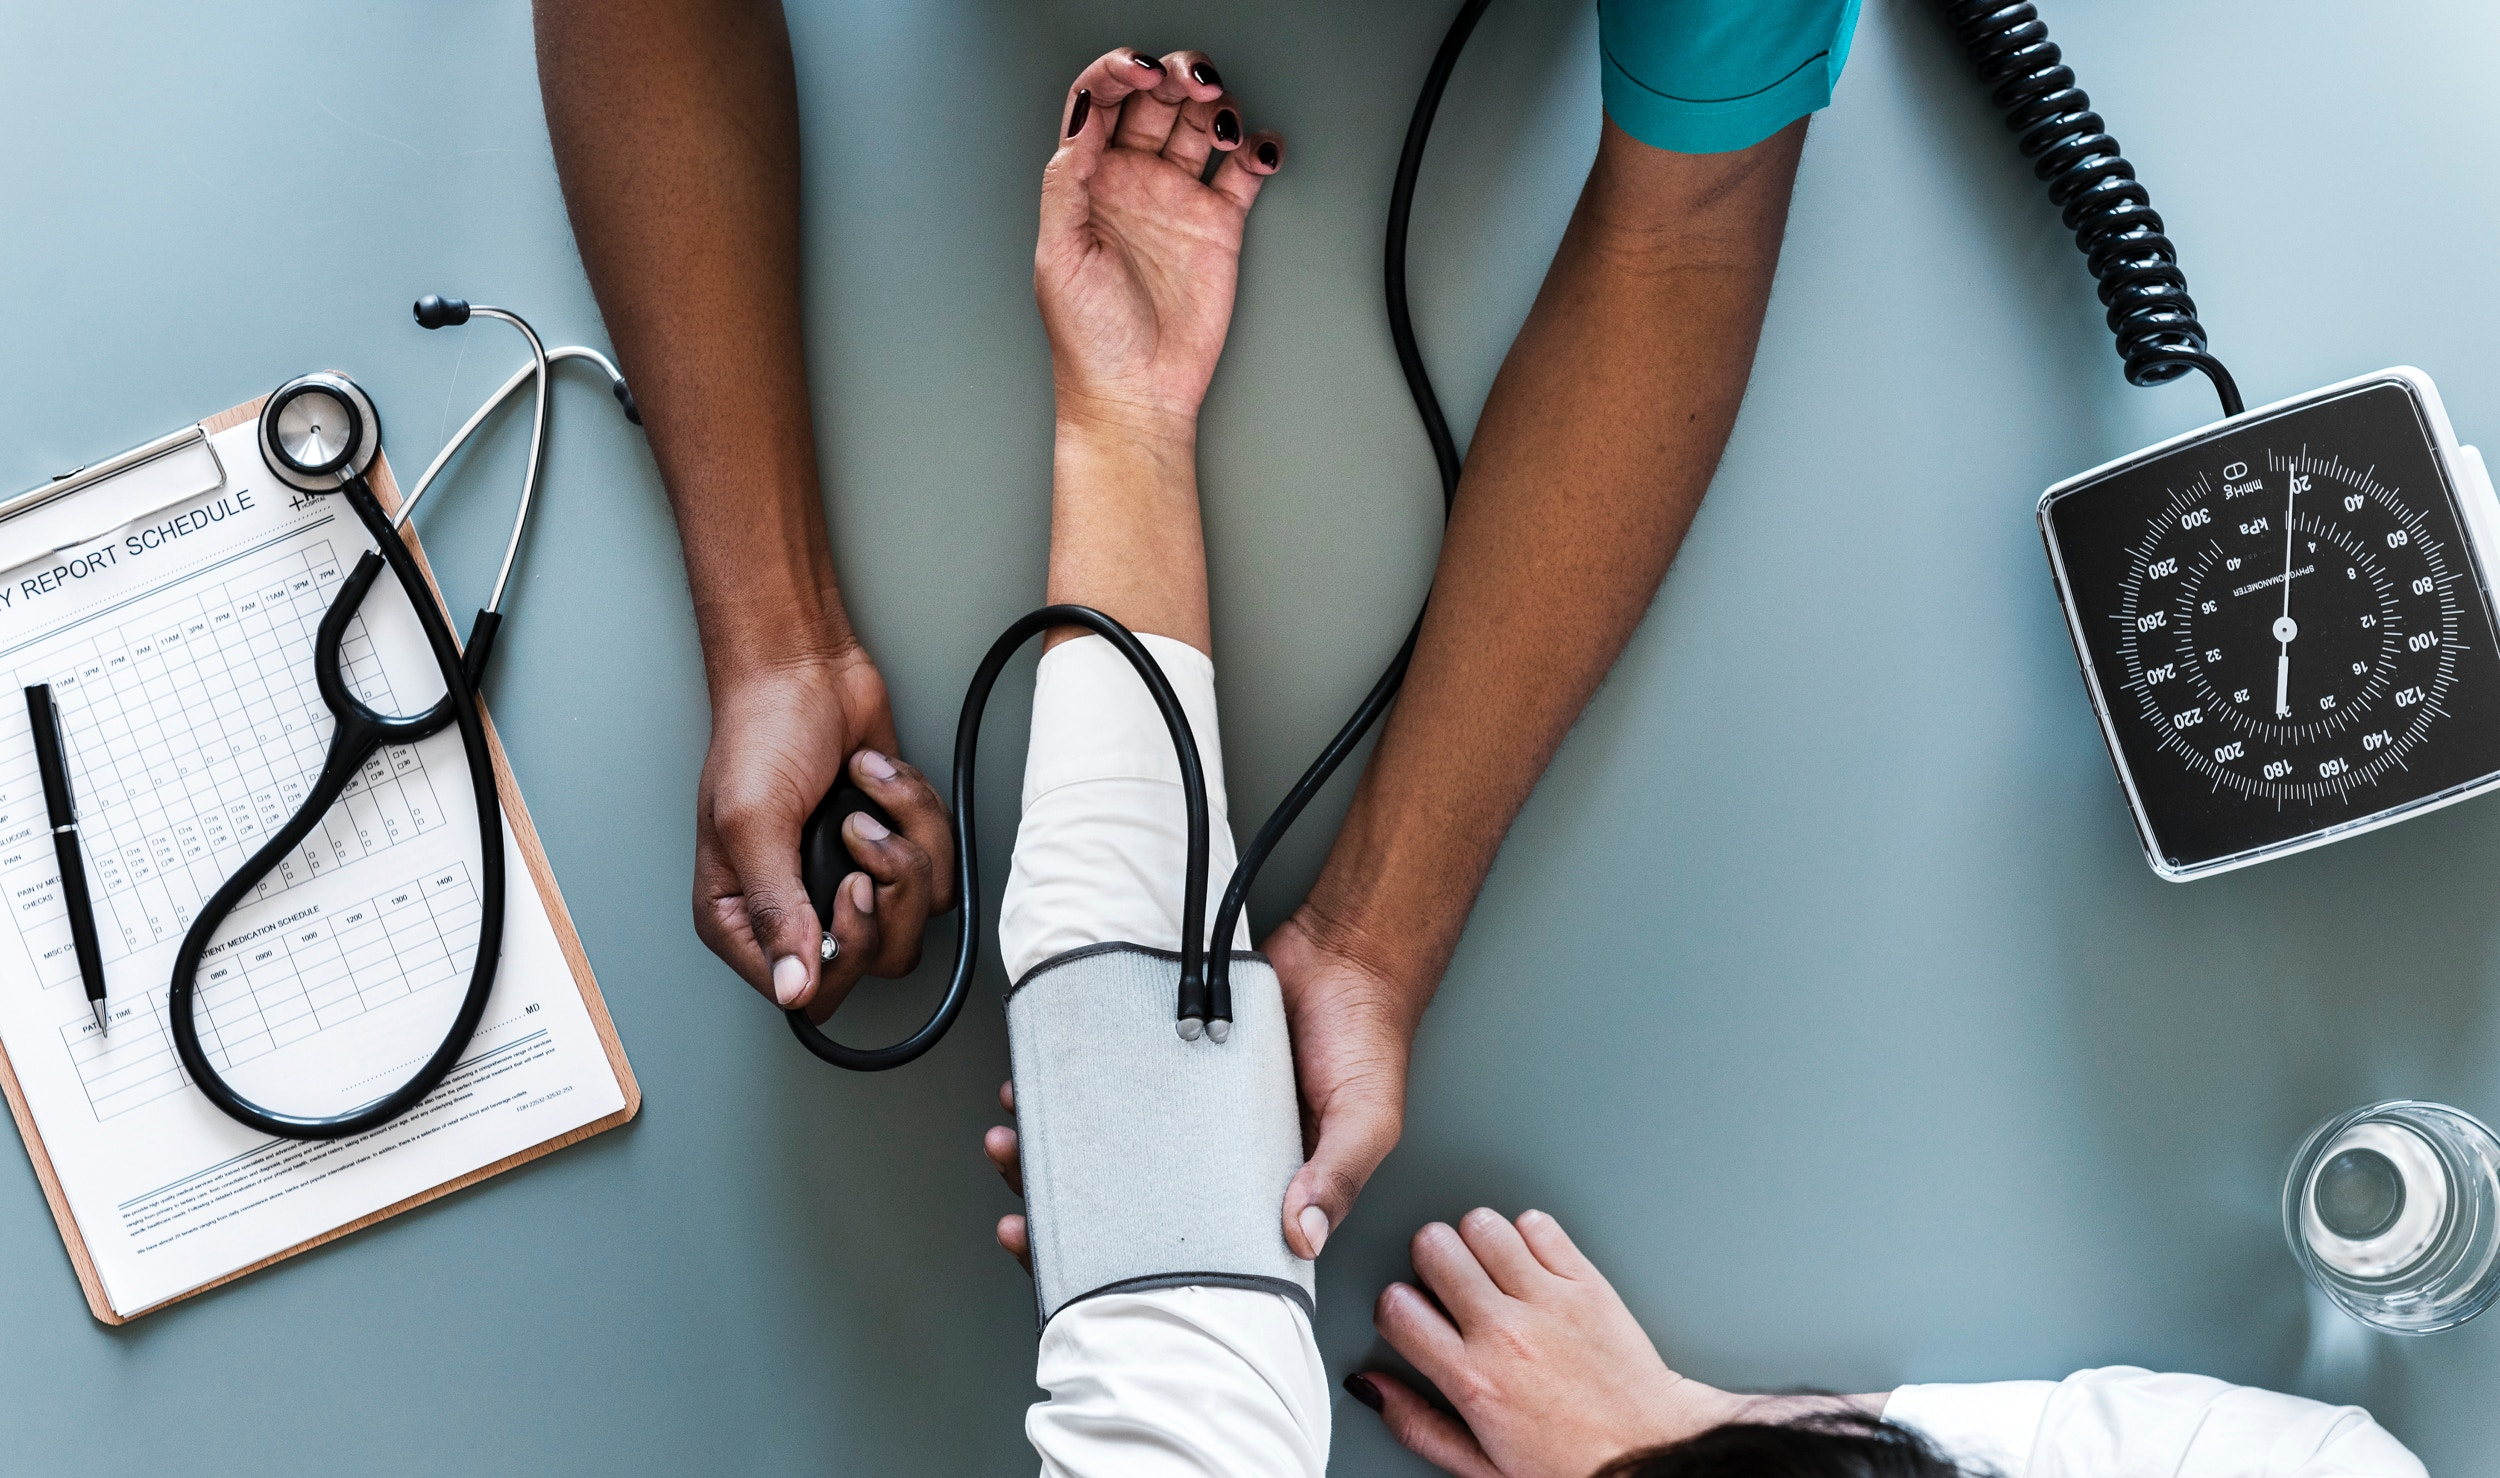 Effective contract management can help hospitals monitor vendor and employment contracts and comply with regulations such as HIPAA while reducing costs.